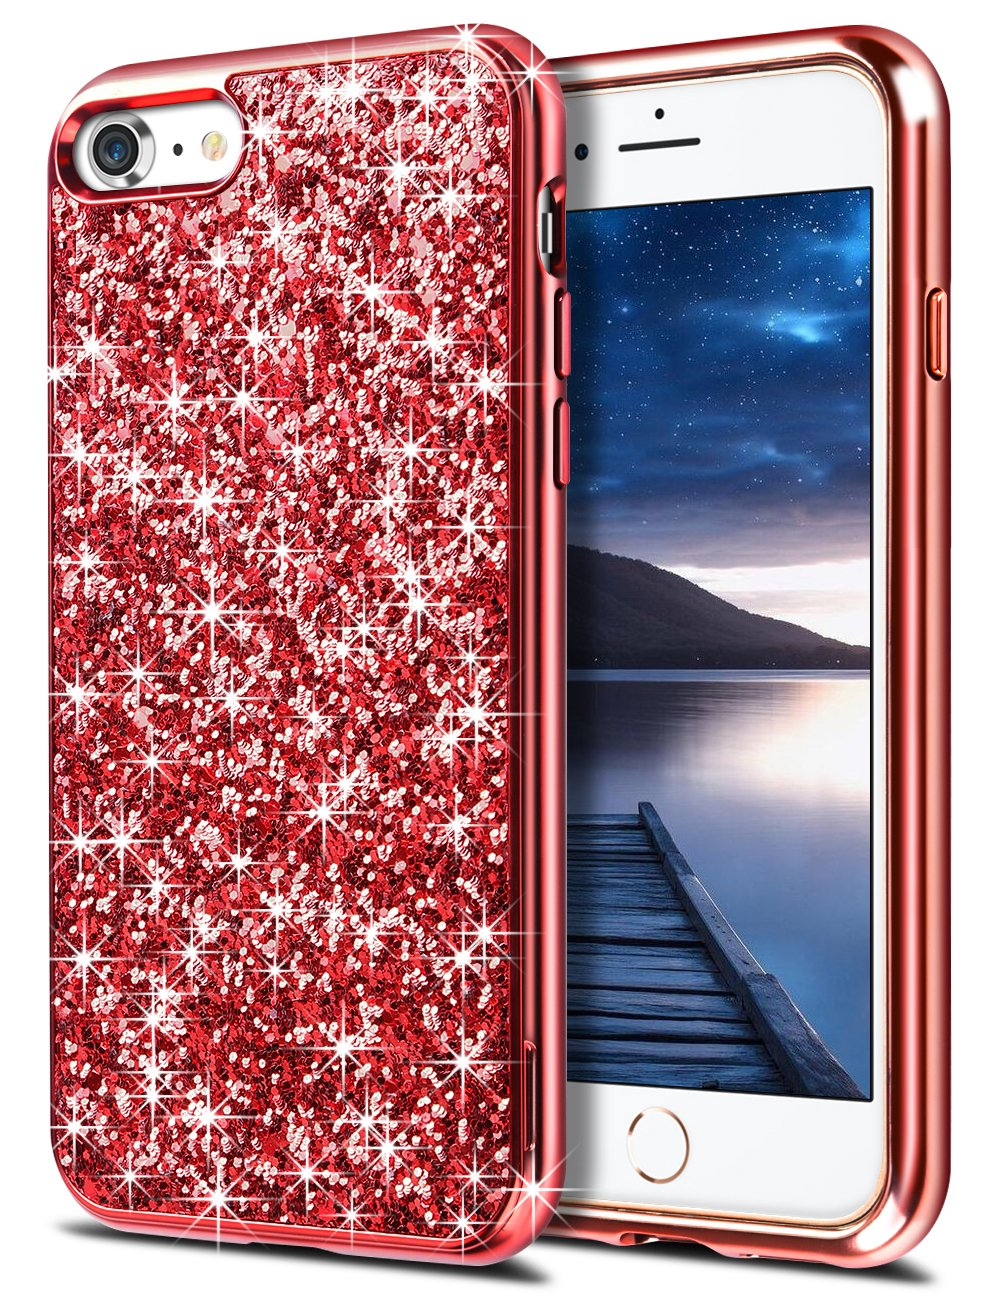 iPhone 6s Plus Case, Aemotoy Glitter Bling Sparkle iPhone 6 Plus Case Anti-scratch Protective Shell 2 in 1 Hybrid Shockproof Solid Sequin Shining Slim Phone Case Cover For iPhone 6 Plus/6s Plus - Red